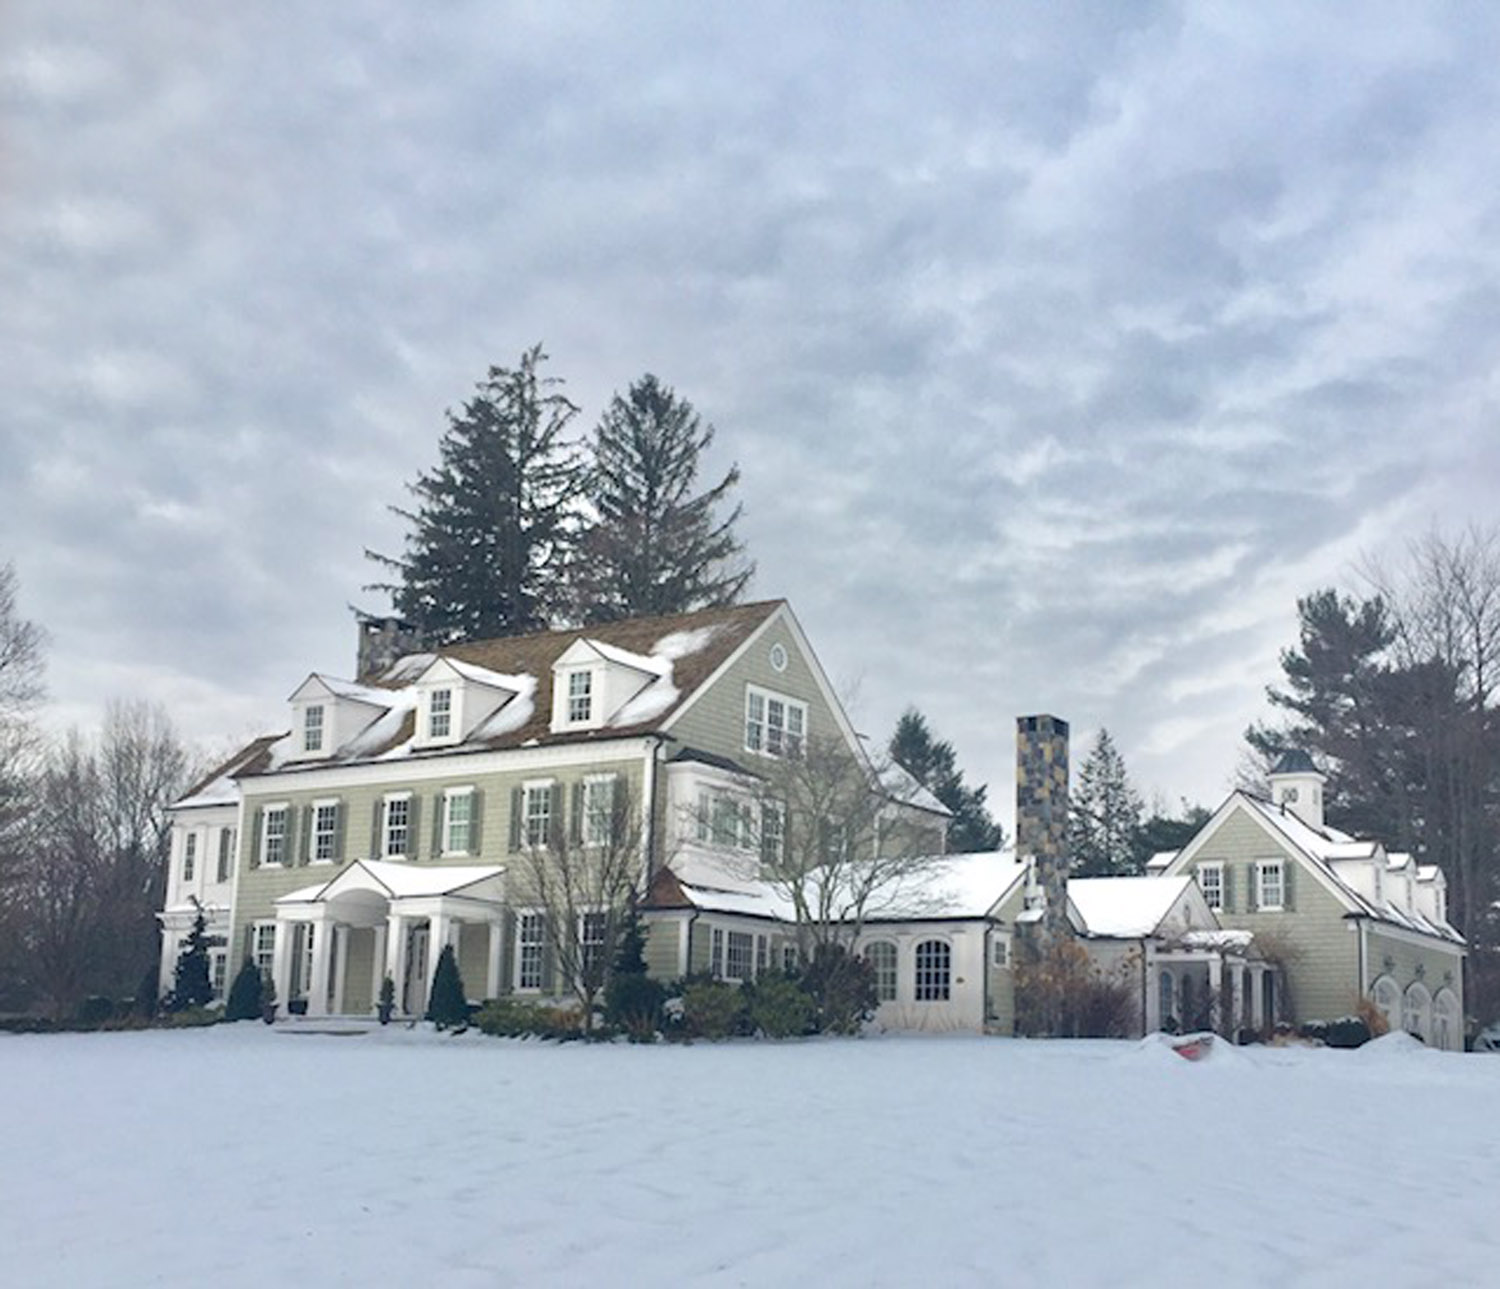 snowy house front.jpg